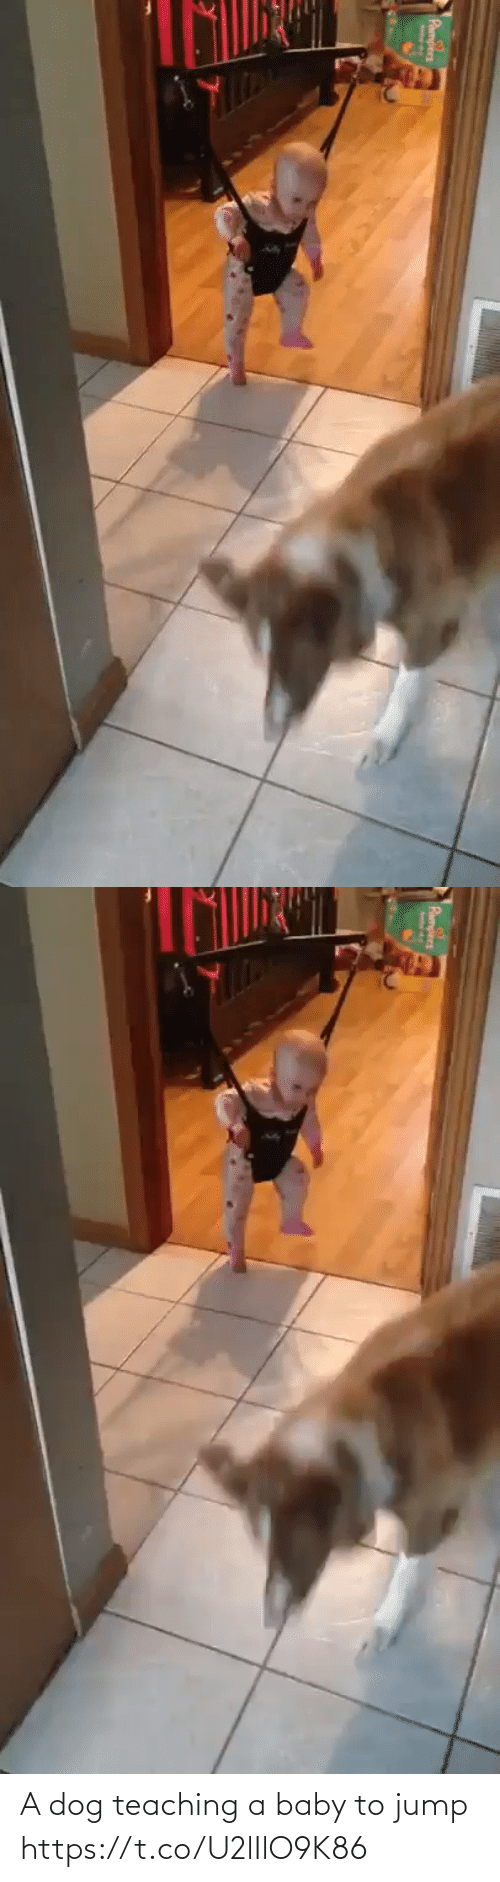 Funny: A dog teaching a baby to jump https://t.co/U2lIlO9K86